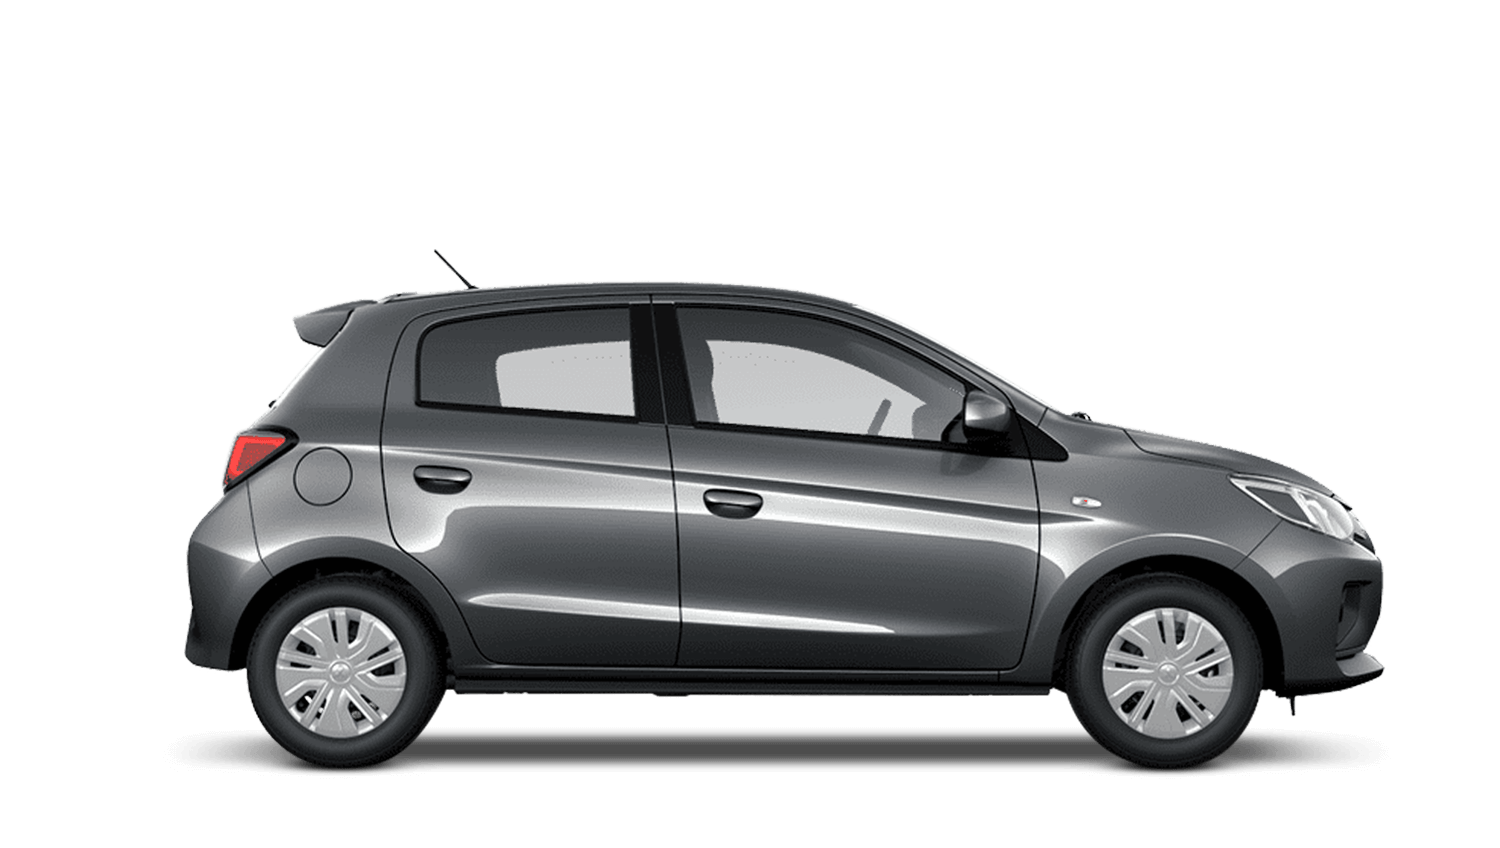 Atlantic Grey New Mitsubishi Mirage